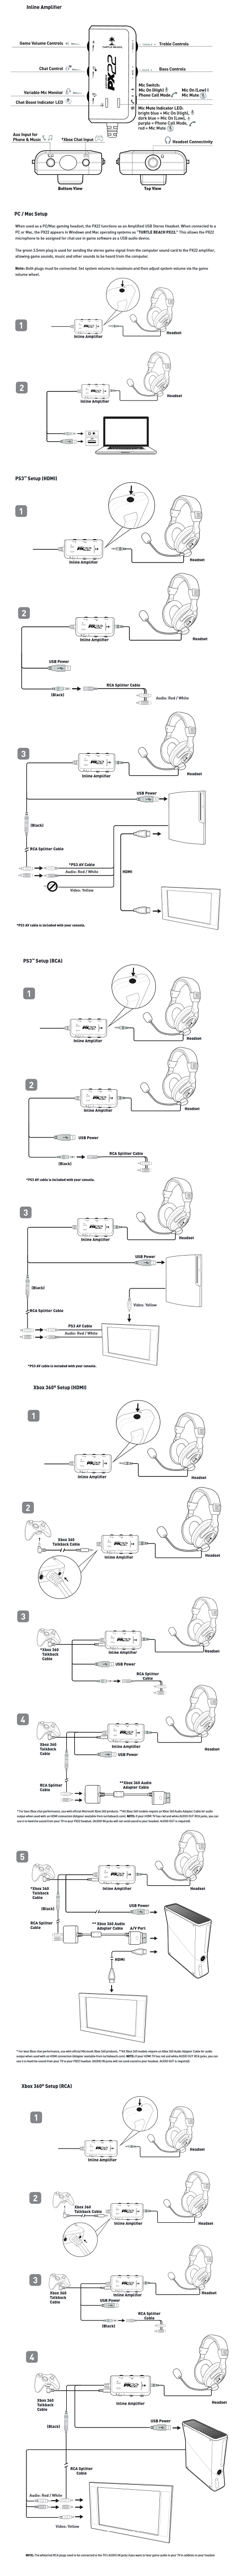 PX22_SETUP turtle beach px22 wiring diagram how to rewire turtle beach Ear Force PX21 at cos-gaming.co